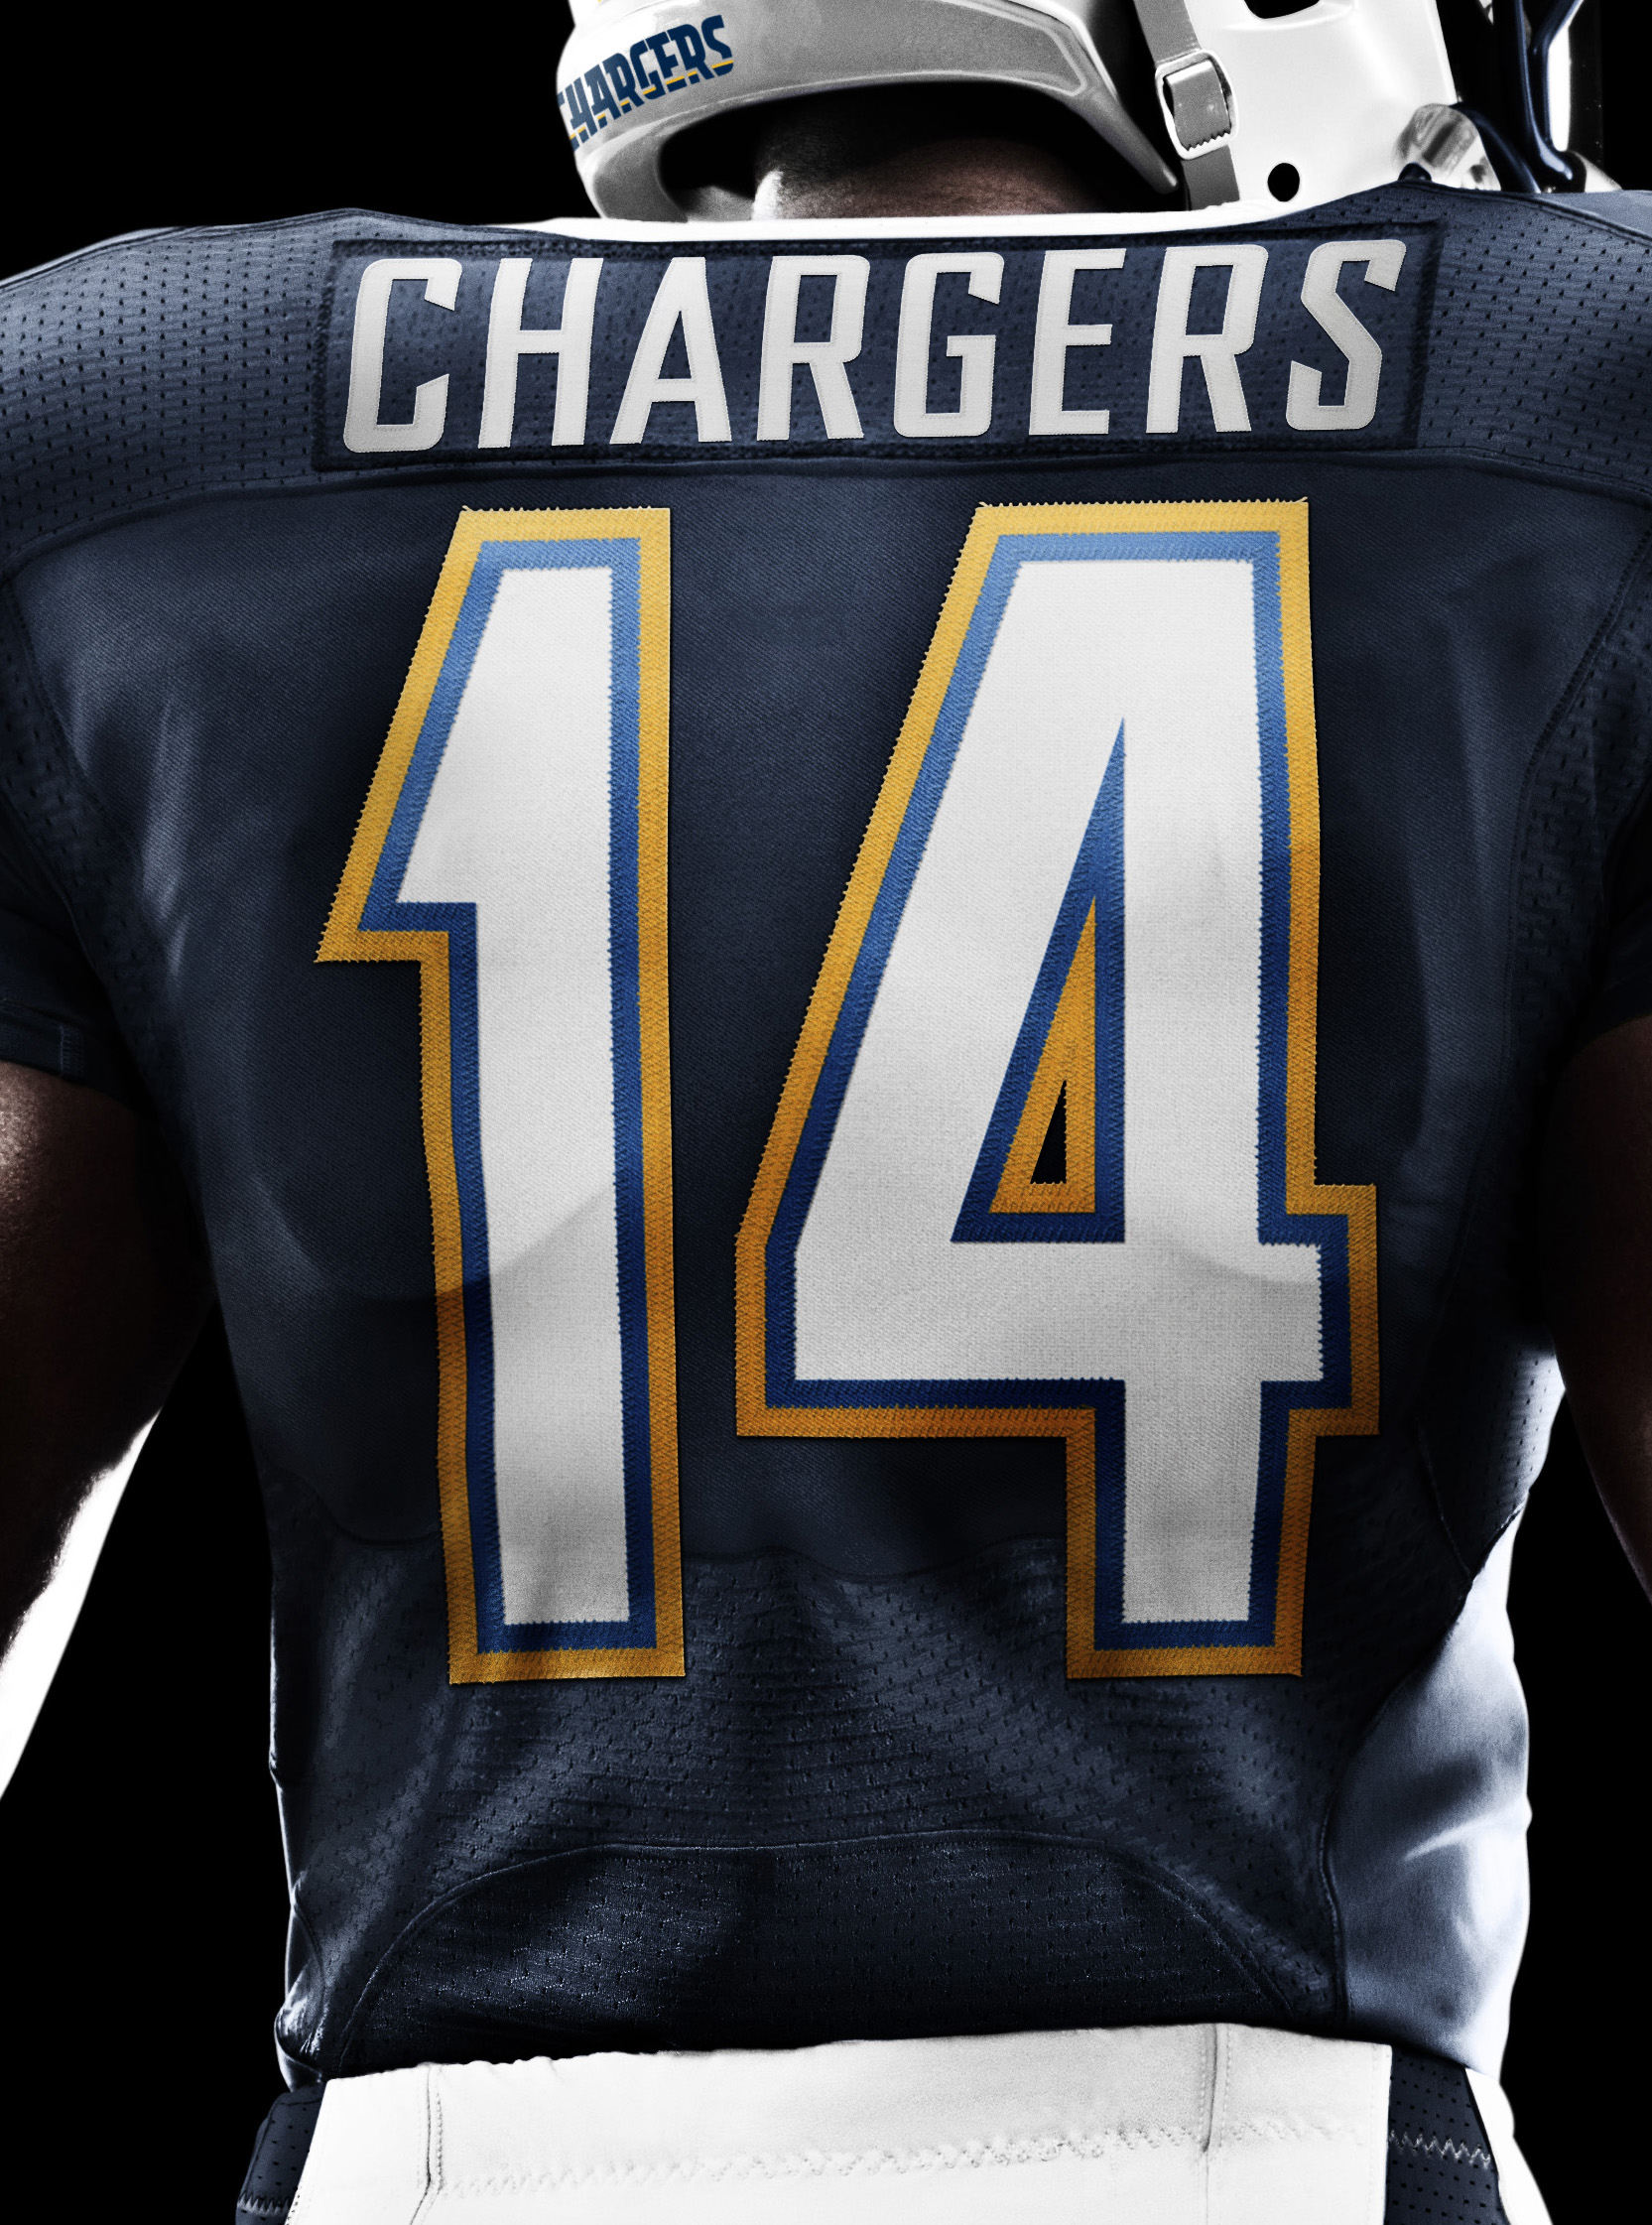 Nike Nfl Shoes Chargers